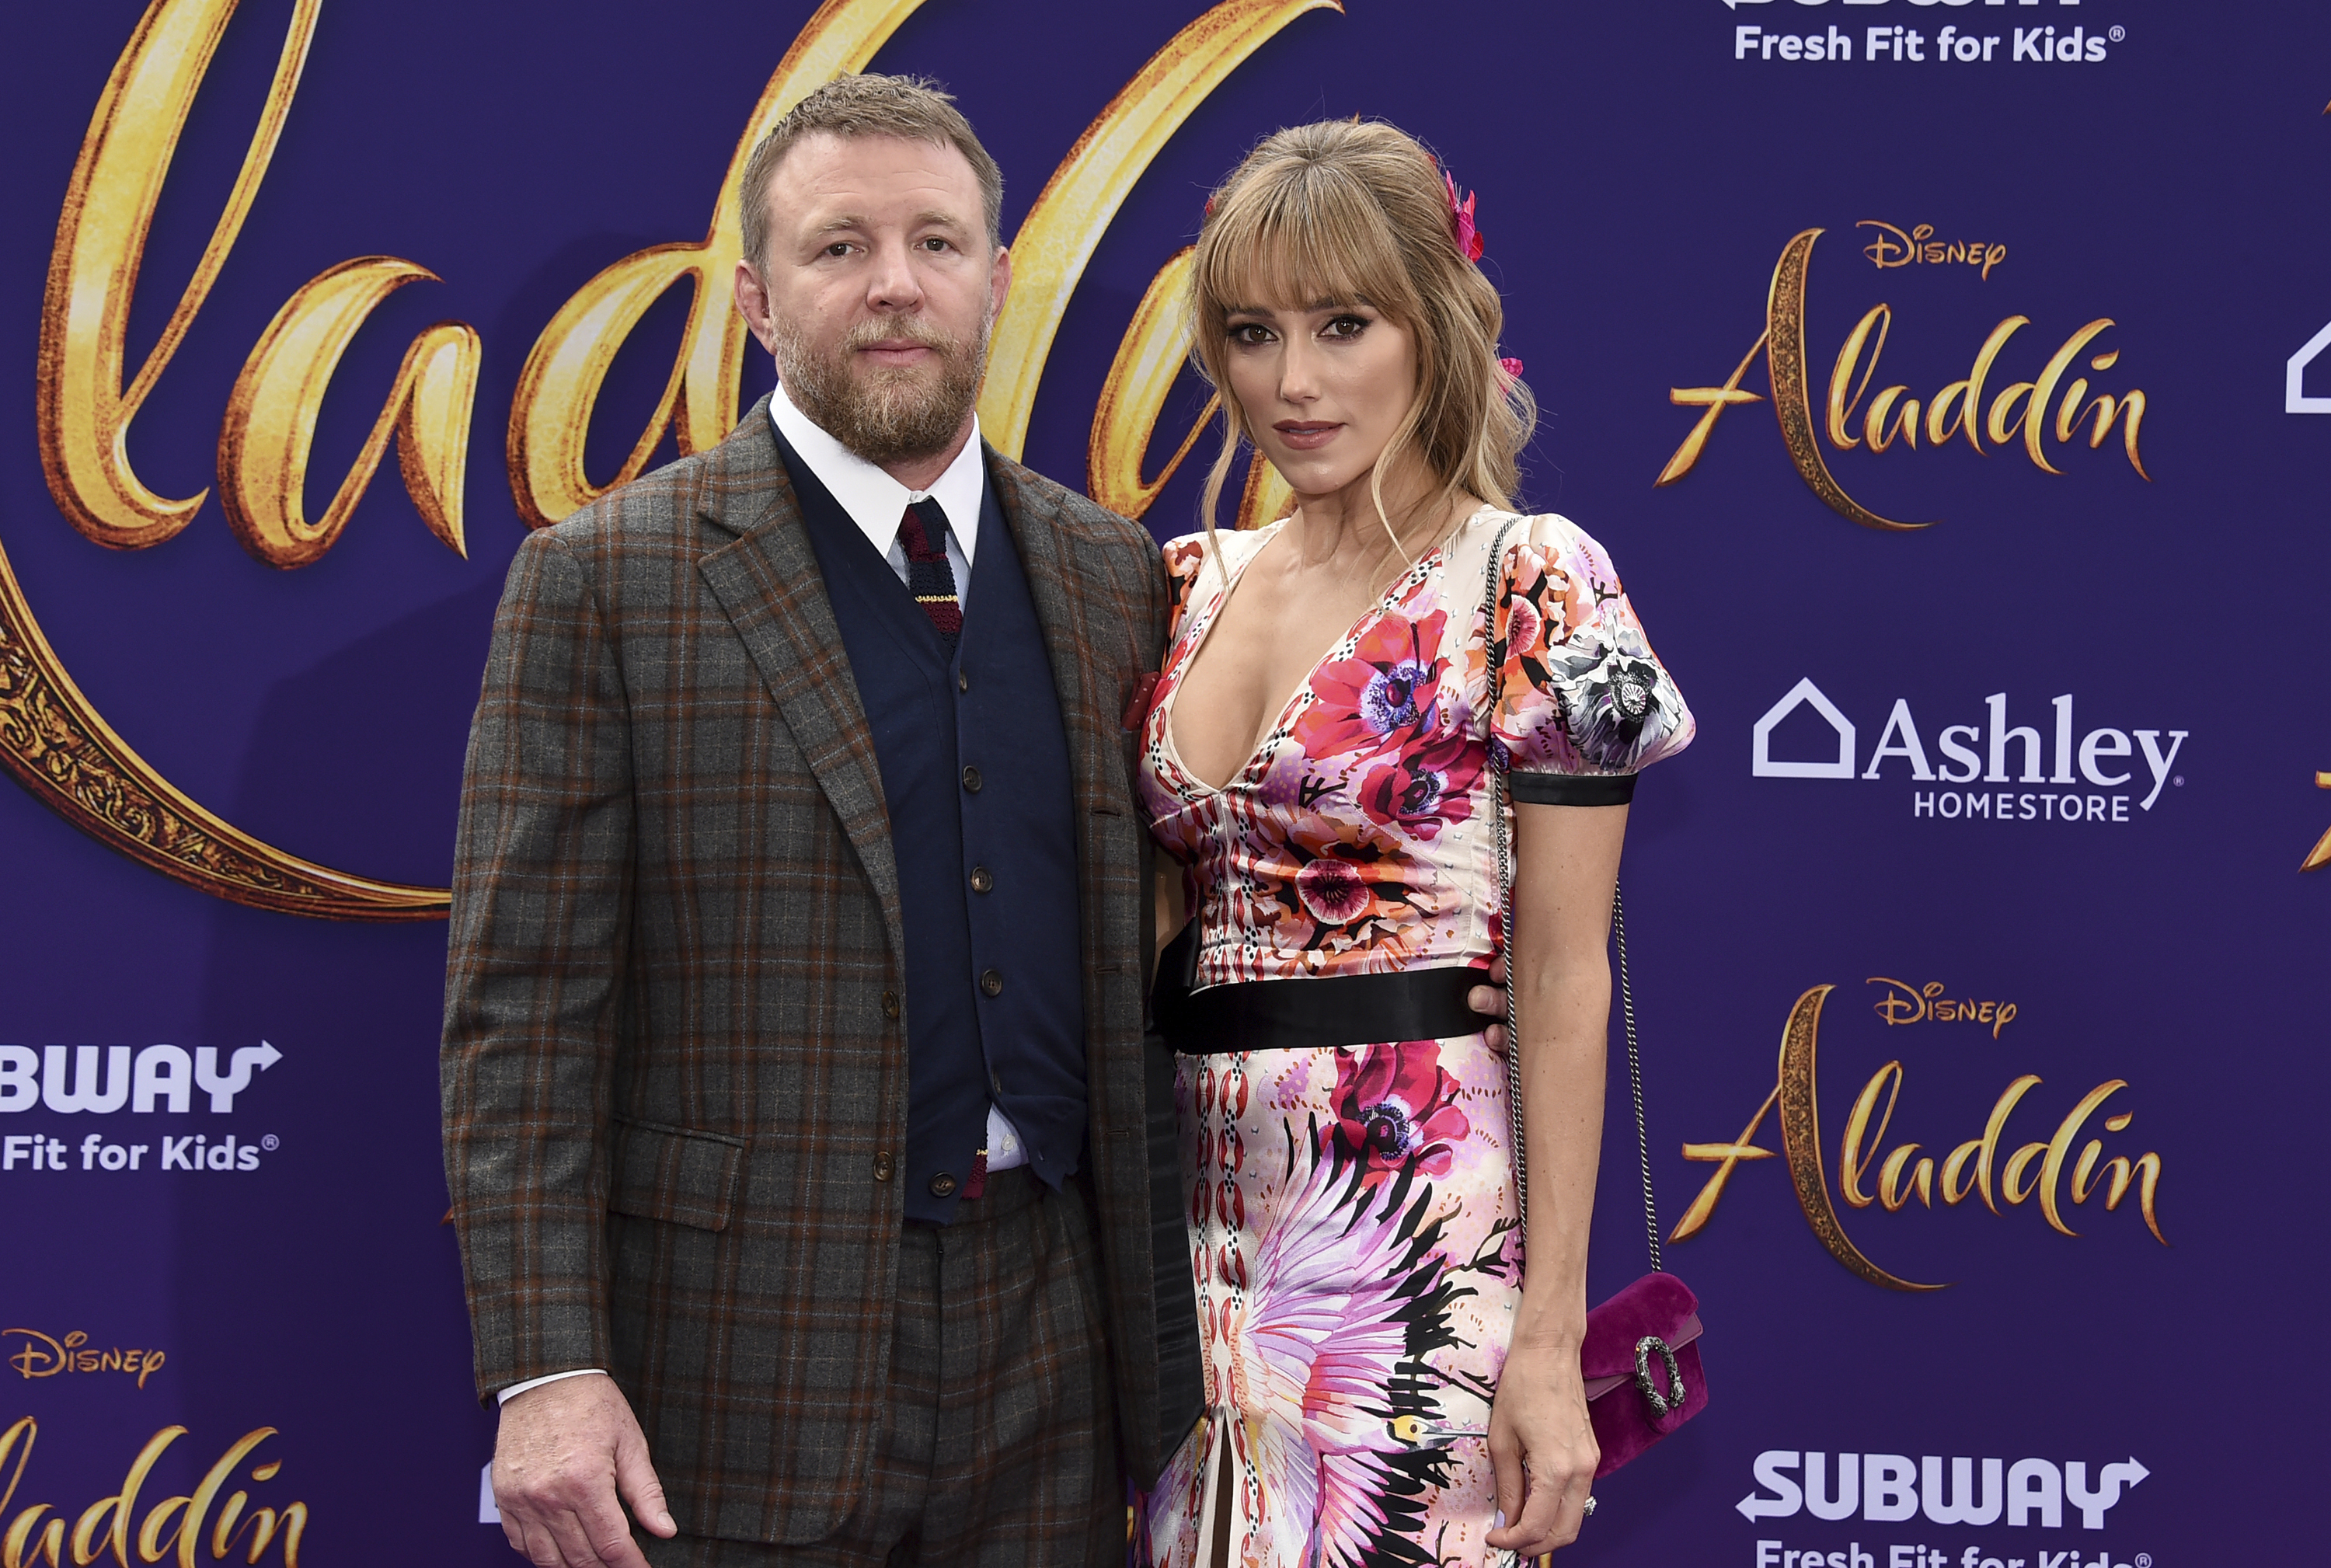 Guy Ritchie y Jacqui Ainsley. (Photo by Jordan Strauss/Invision/AP)